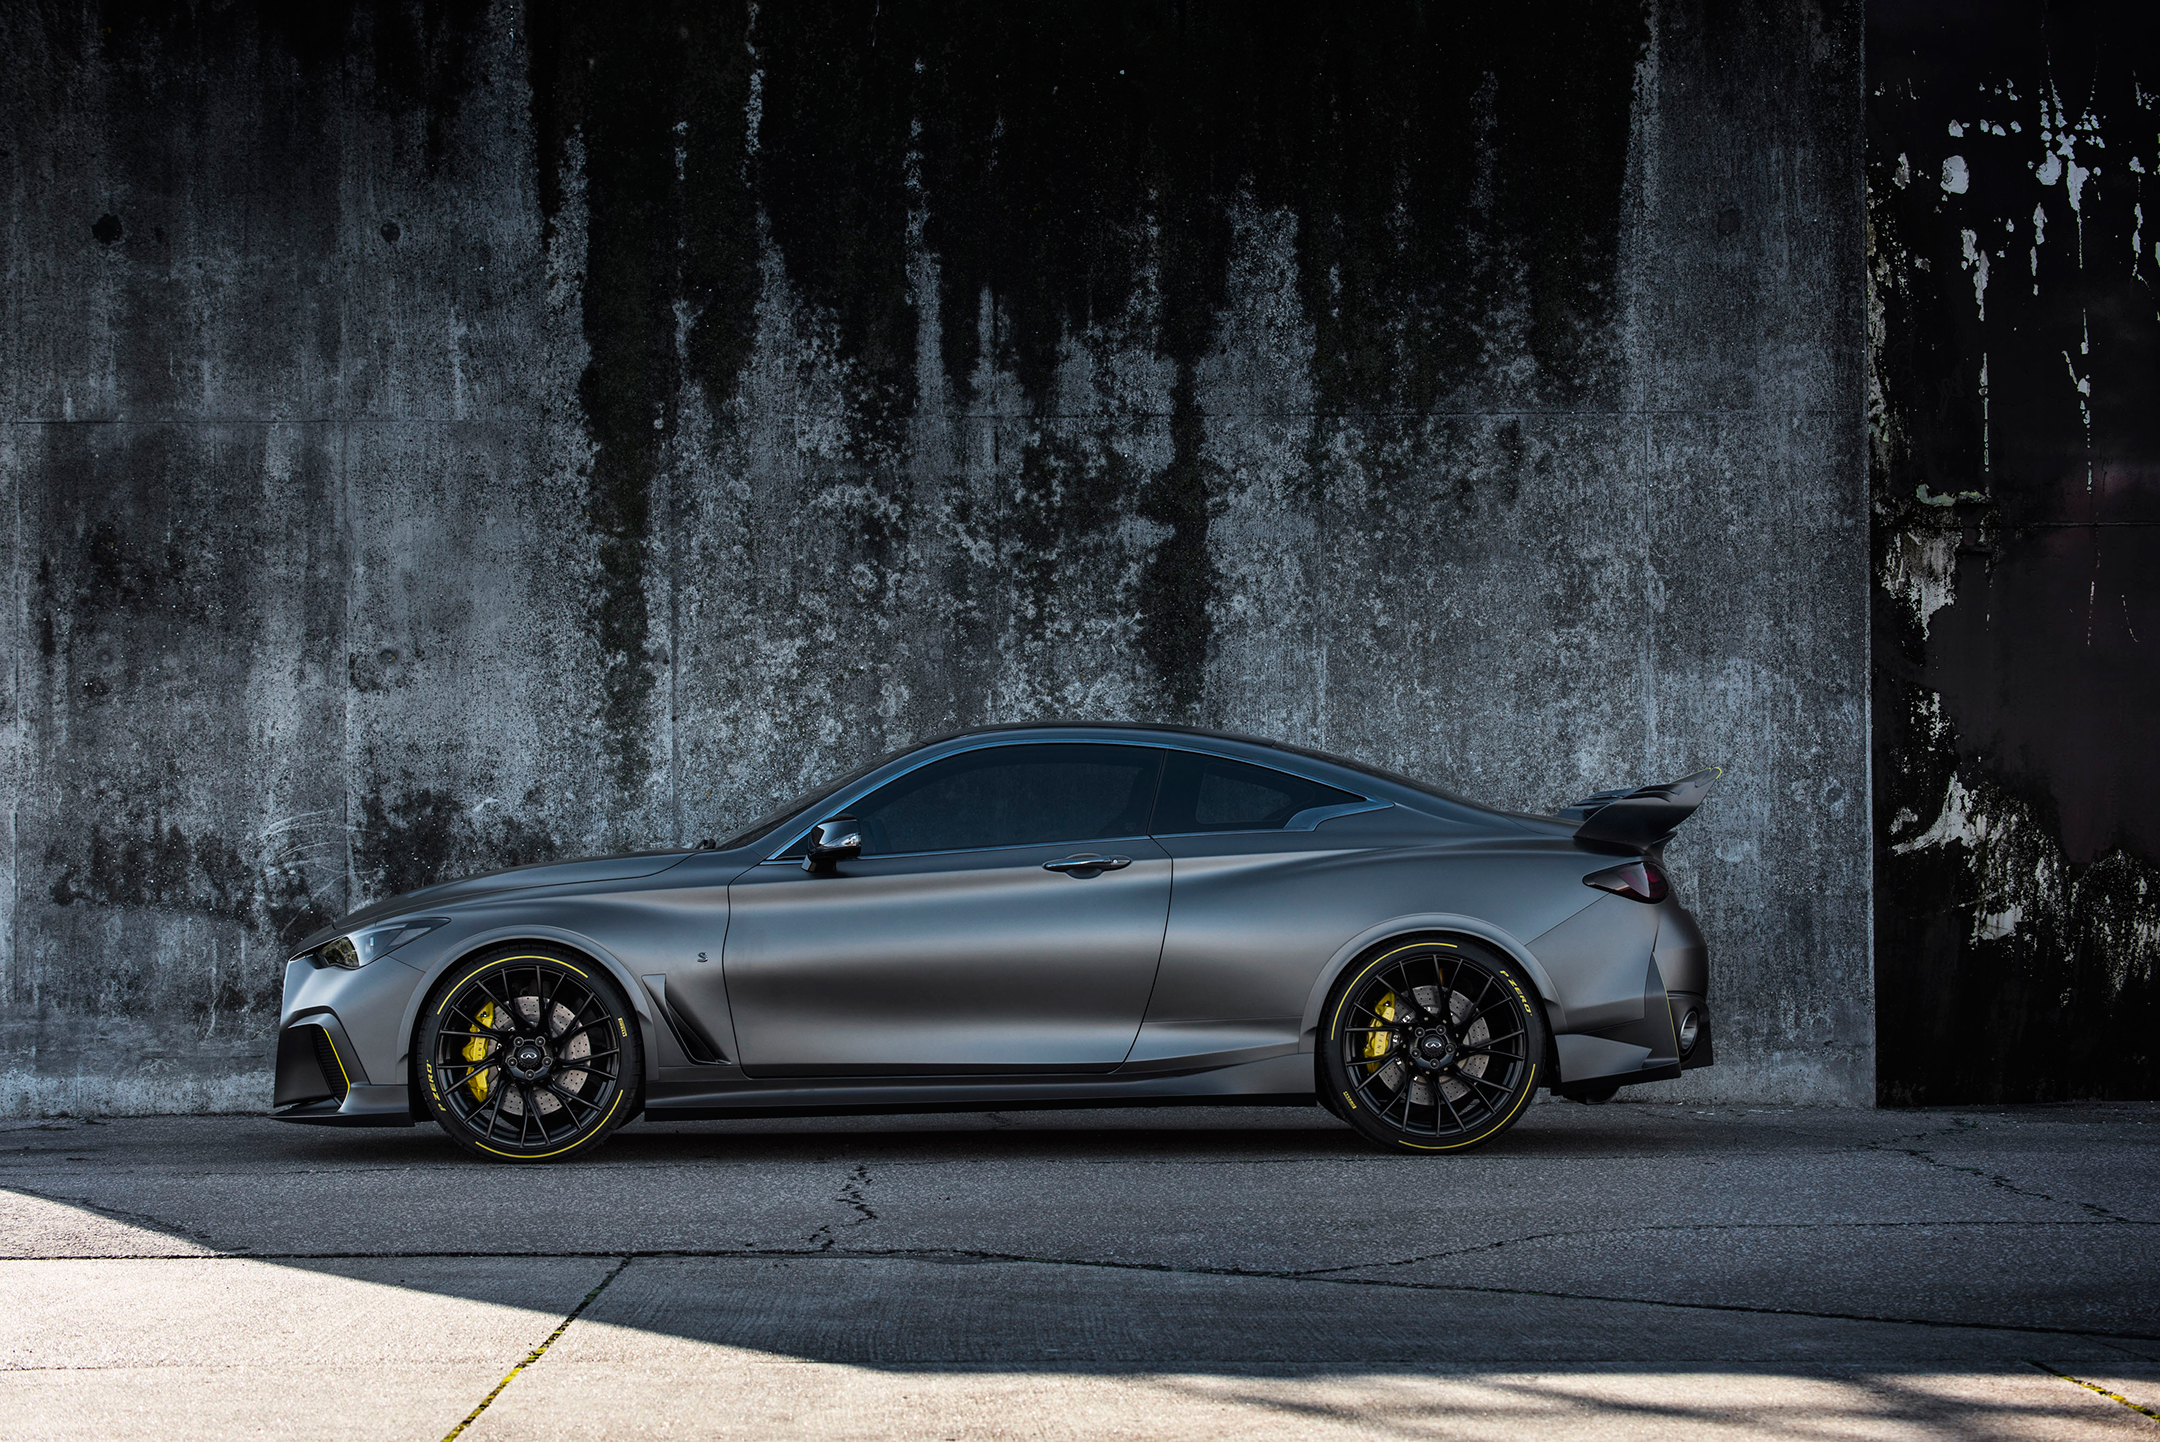 Infiniti Project Black S - 2018 - side-face / profil